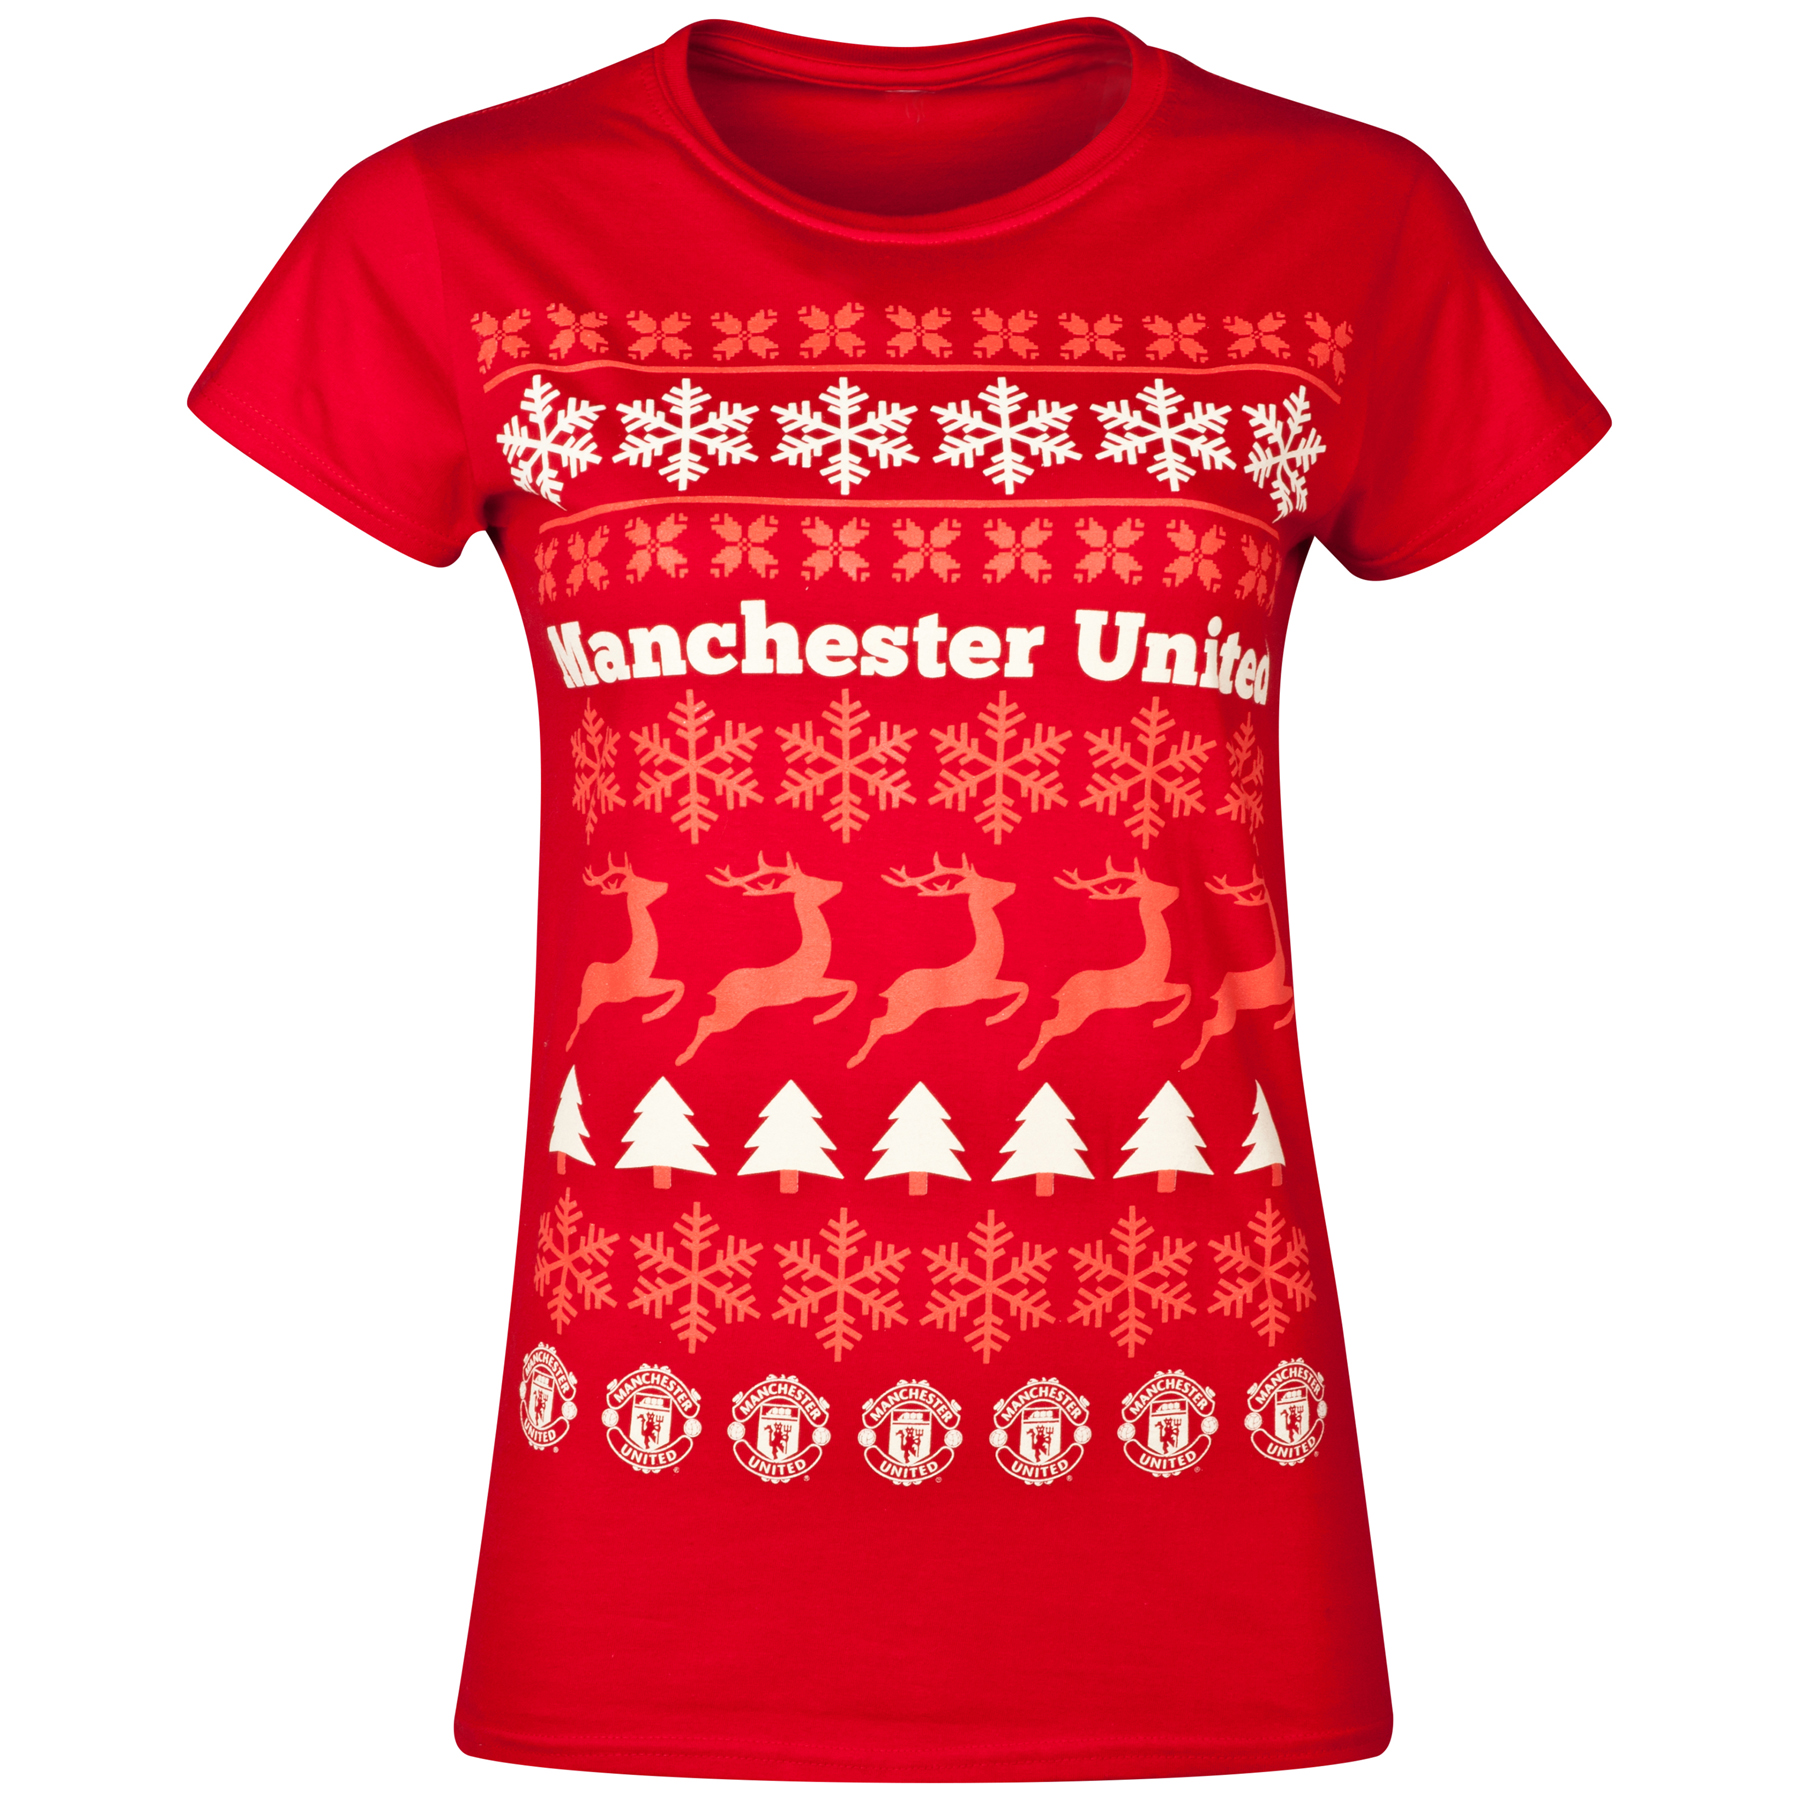 Manchester United Festive T-Shirt - Cherry Red - Womens